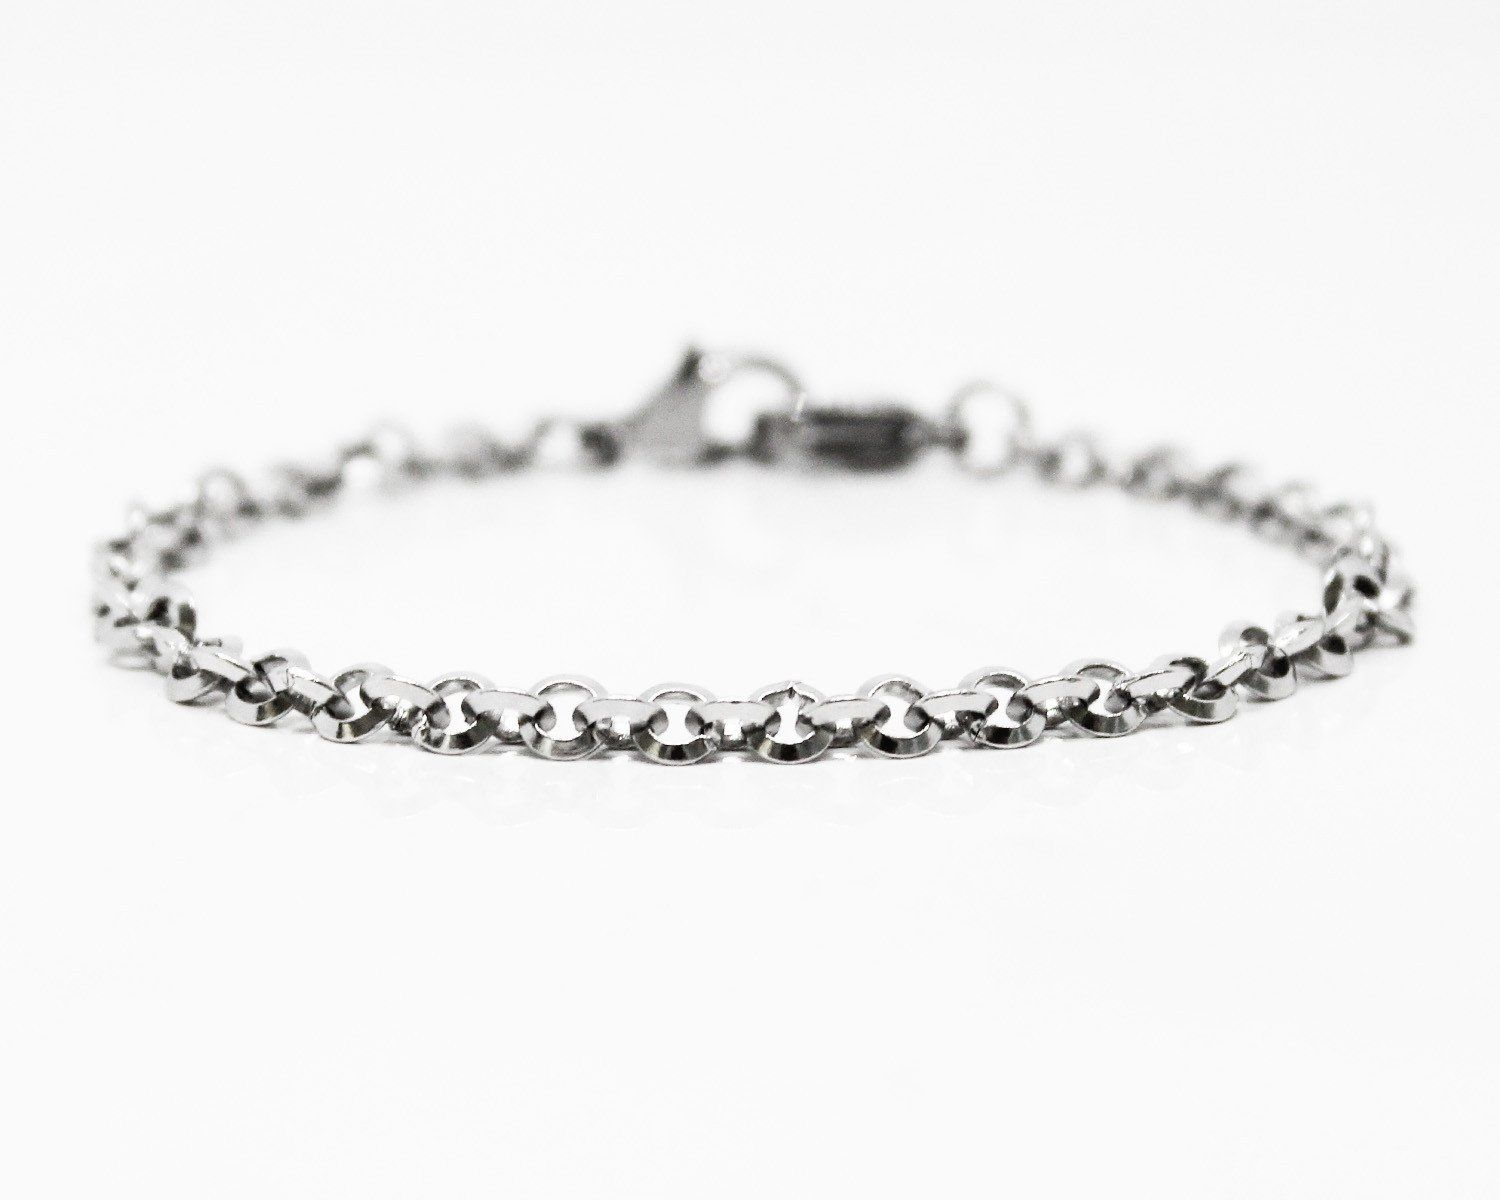 Des Liens stainless steel chain. Men's jewelry and menswear